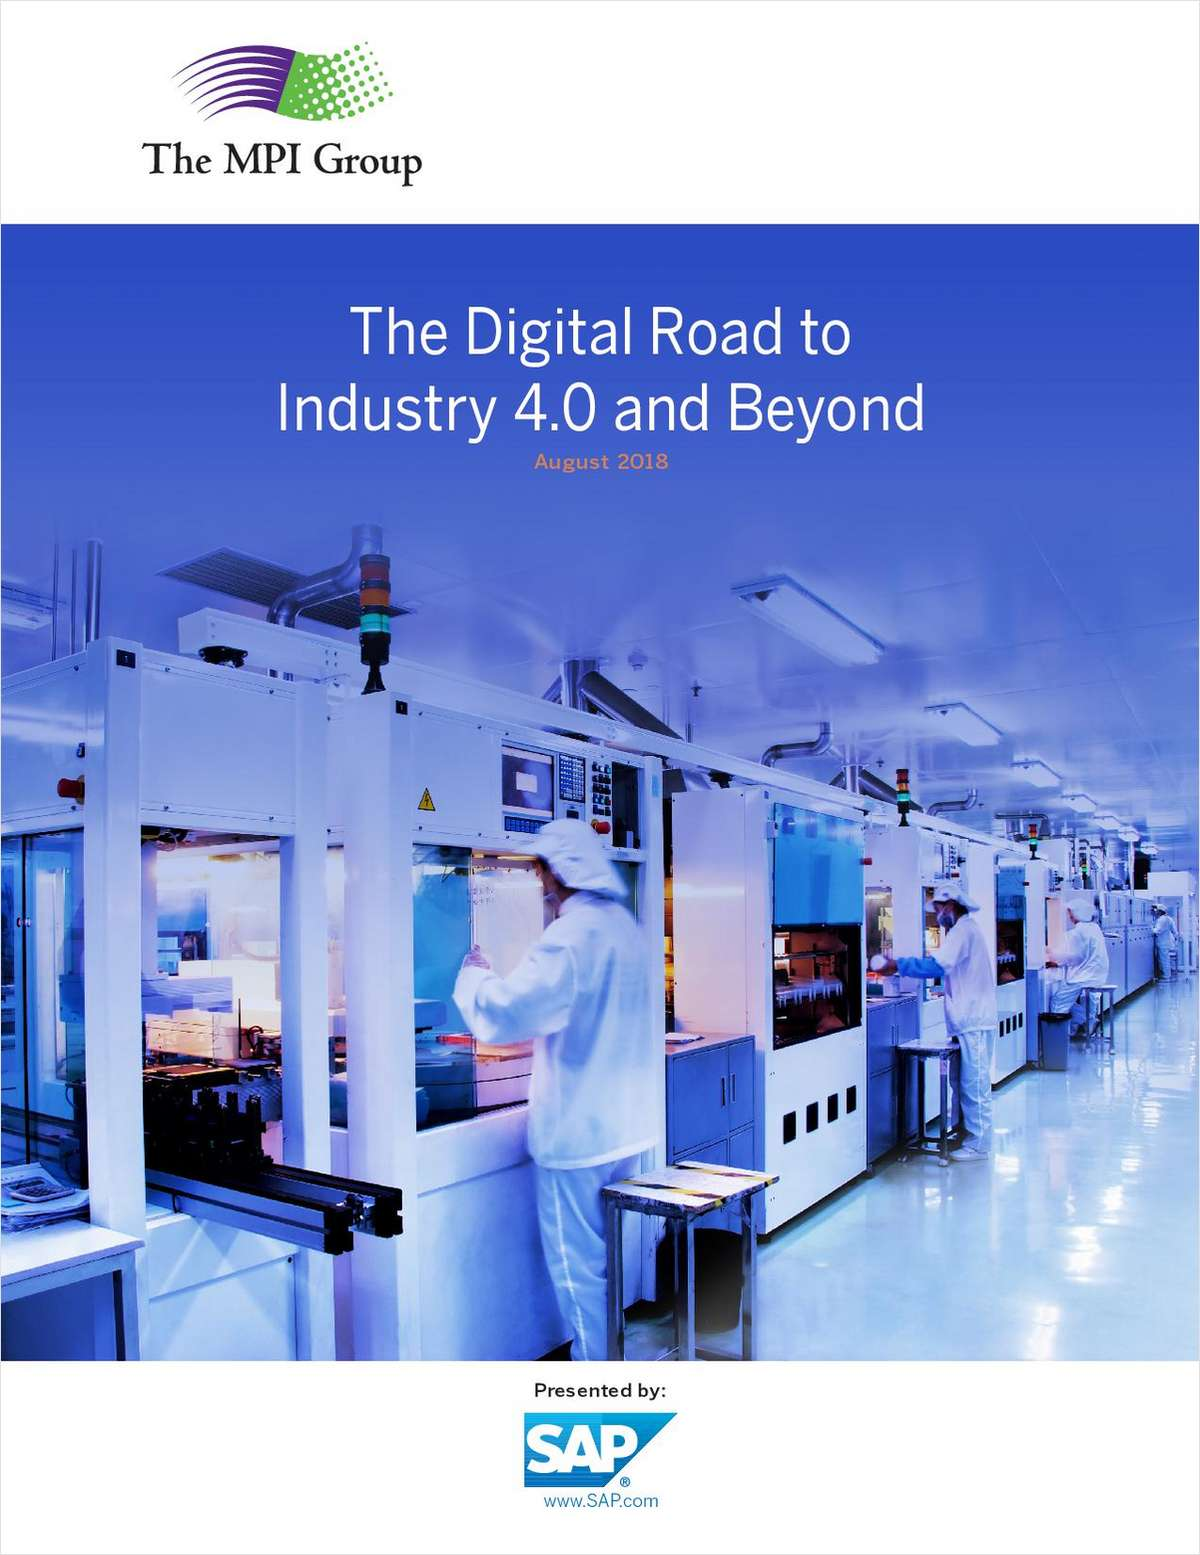 The Digital Road to Industry 4.0